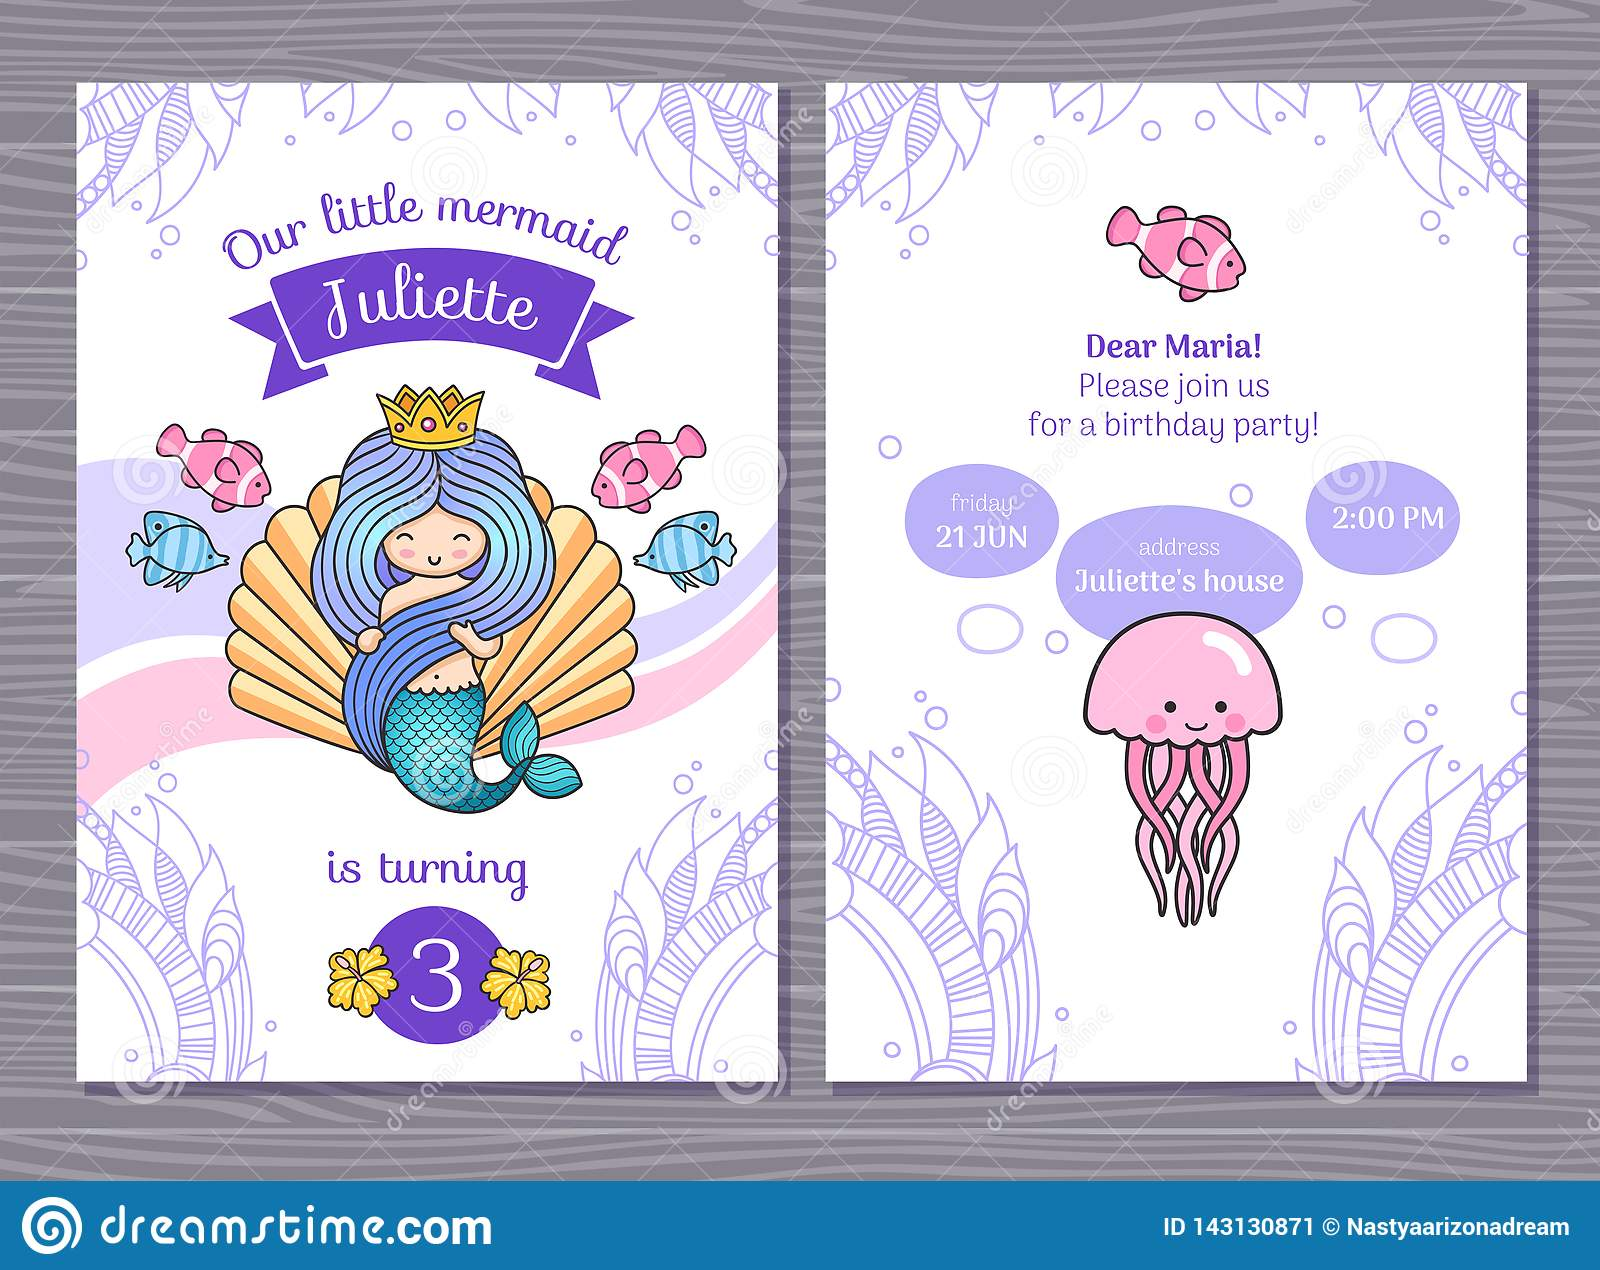 Astonishing Birthday Greeting Card With Little Princess Mermaid And Big Sea Funny Birthday Cards Online Fluifree Goldxyz